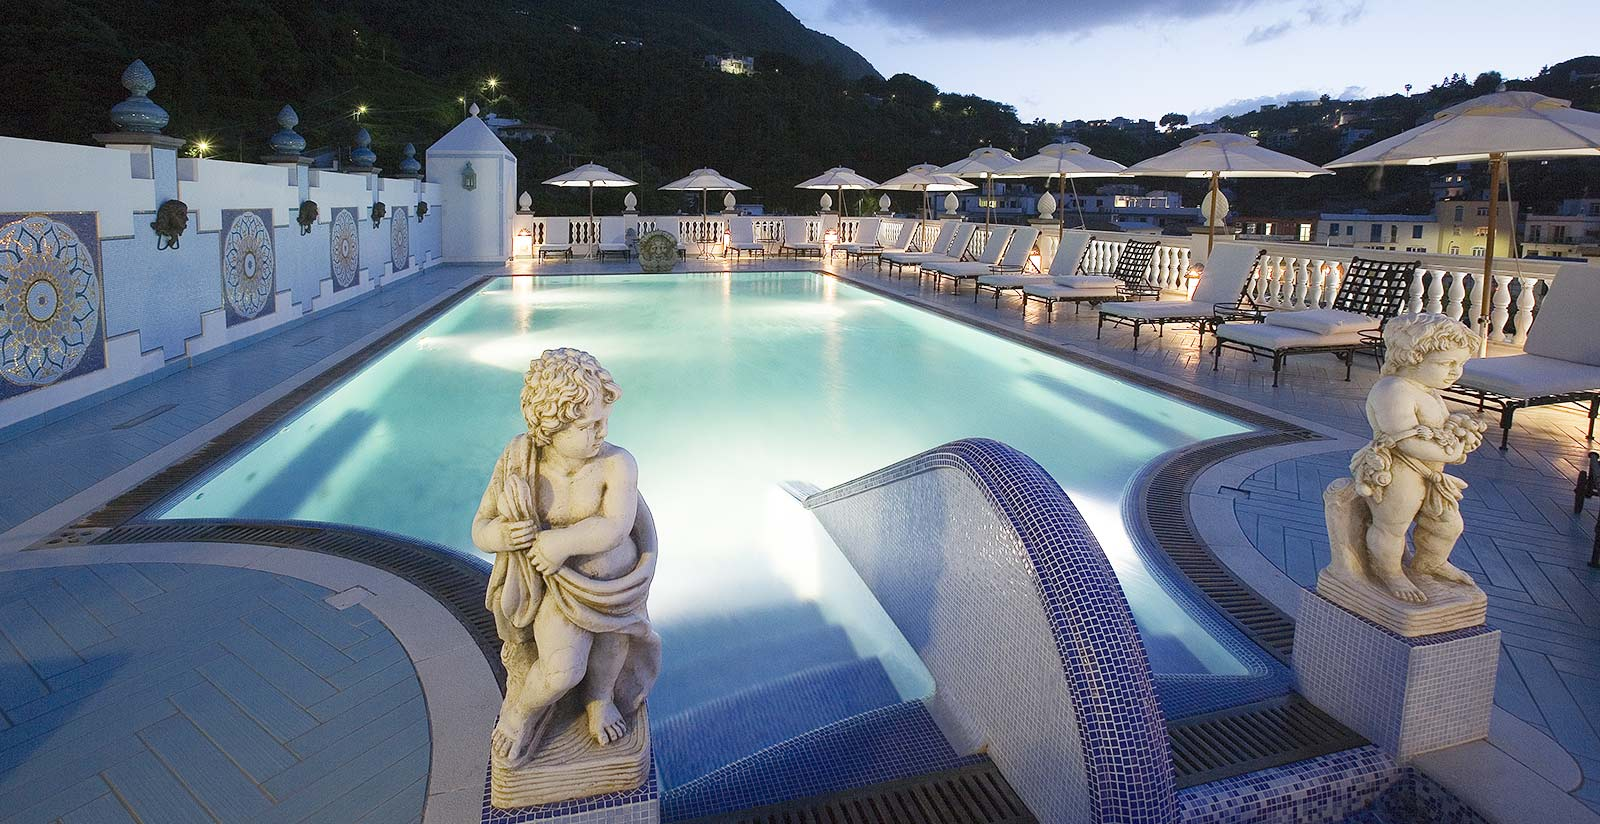 Albergo Terme Italia Terme Manzi 5 Stars Hotel Spa Ischia Official Website Book Now